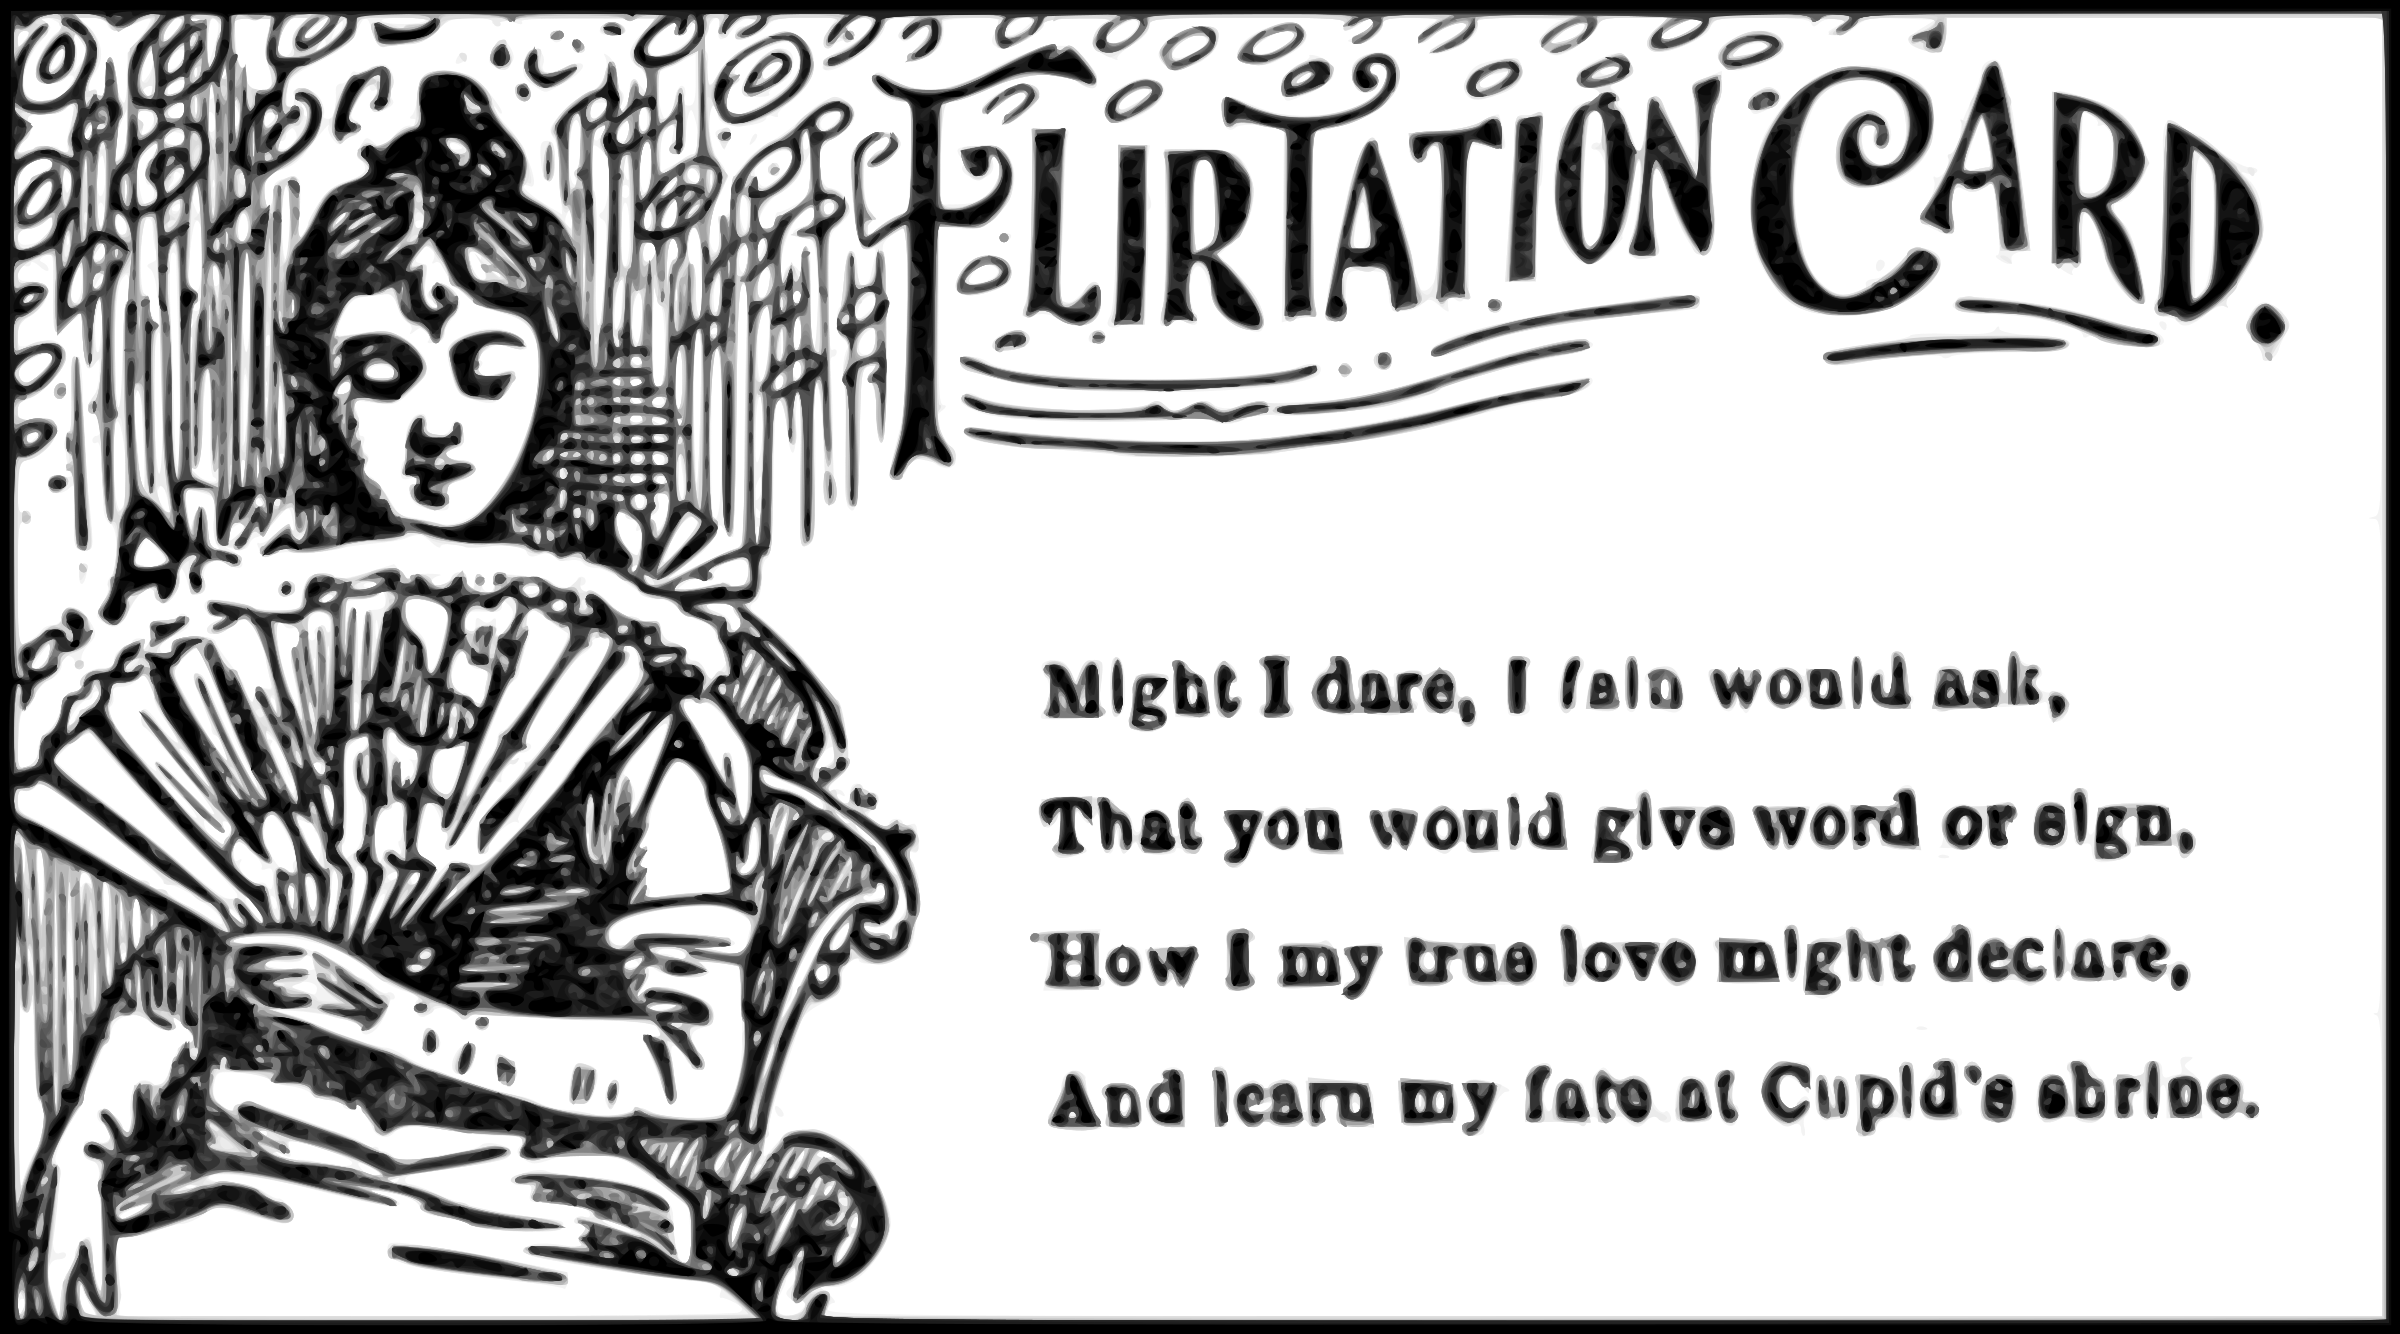 Flirtation Card by phidari